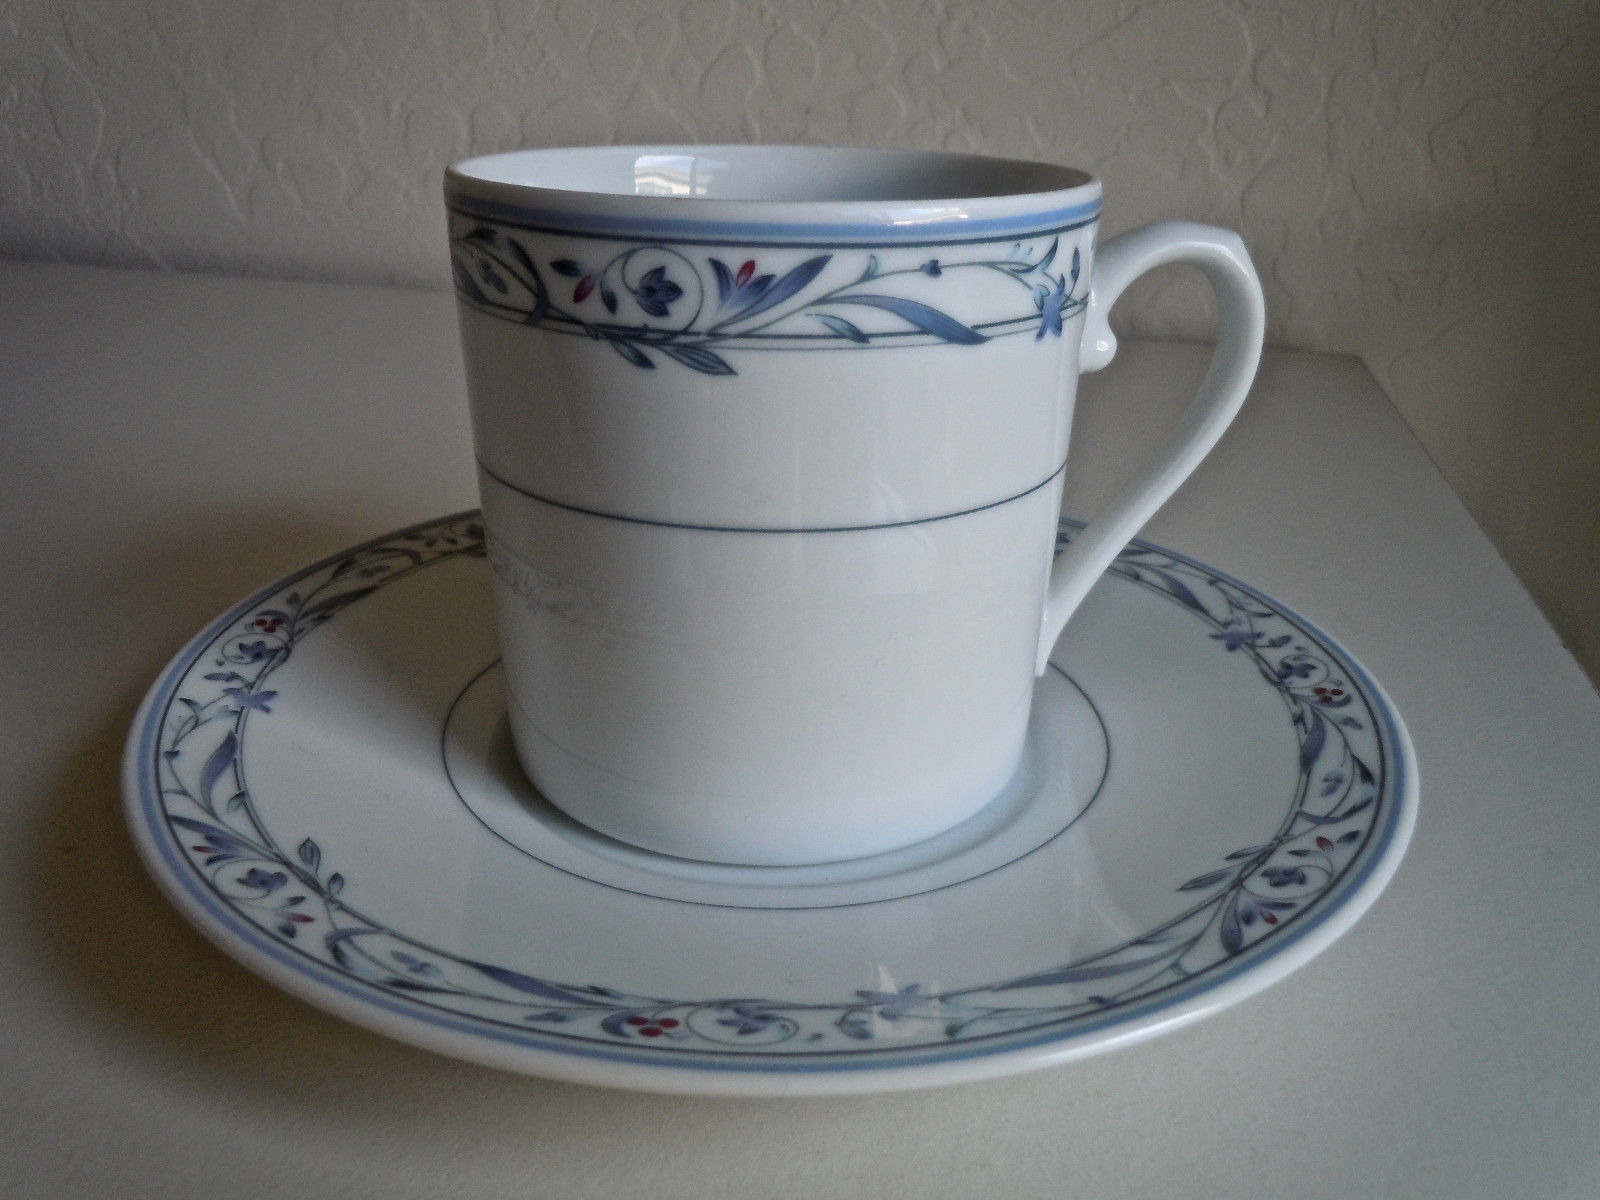 Christopher Stuart Overture Cup and Saucer